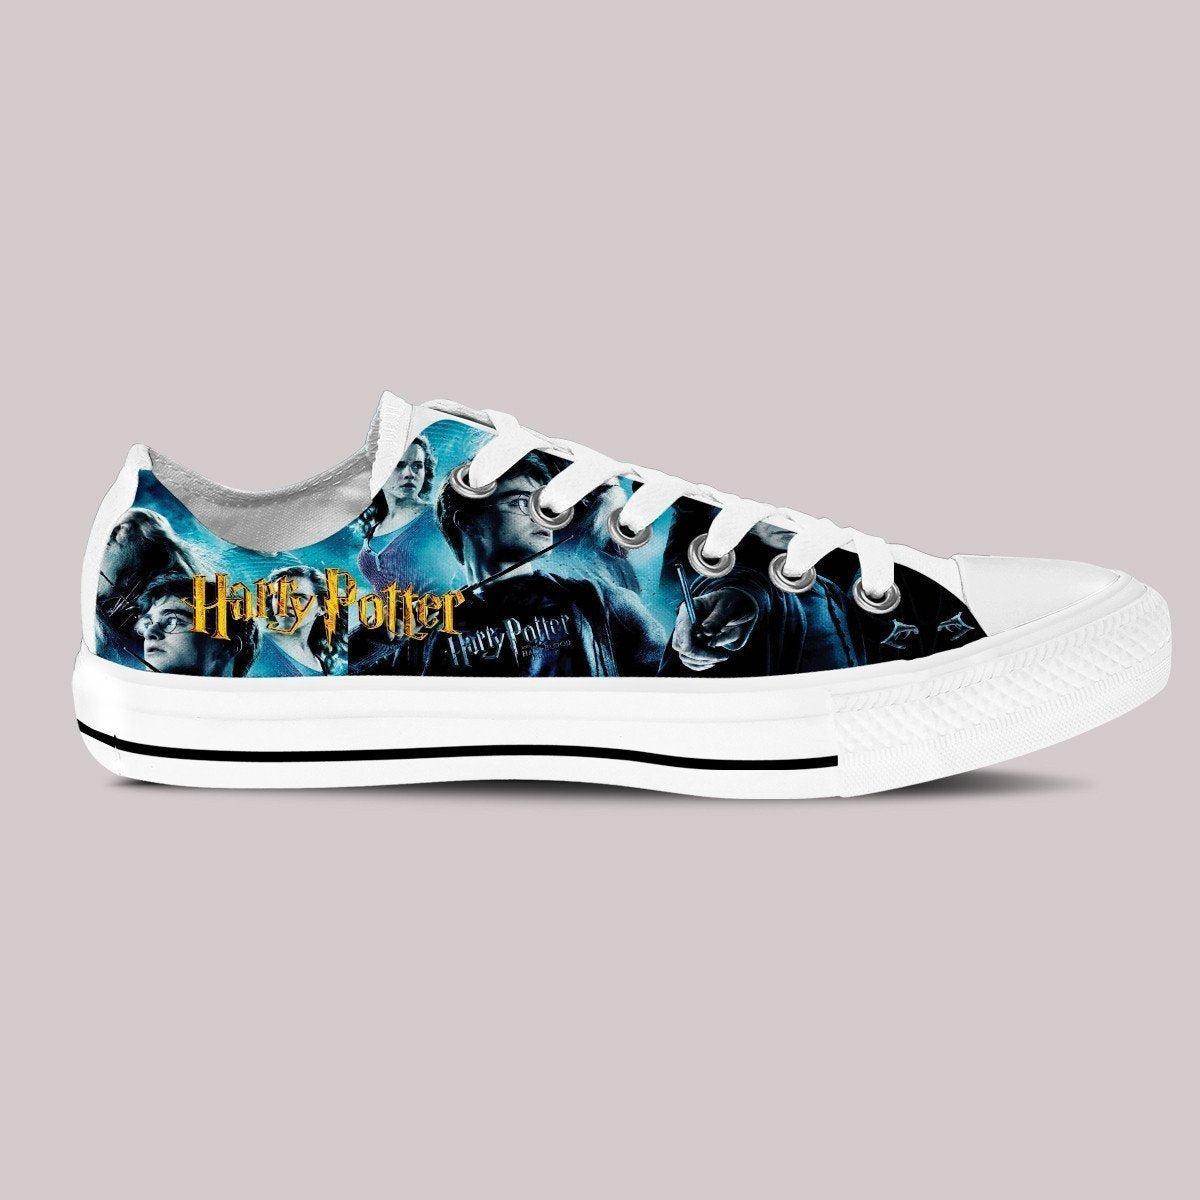 harry potter mens low cut sneakers